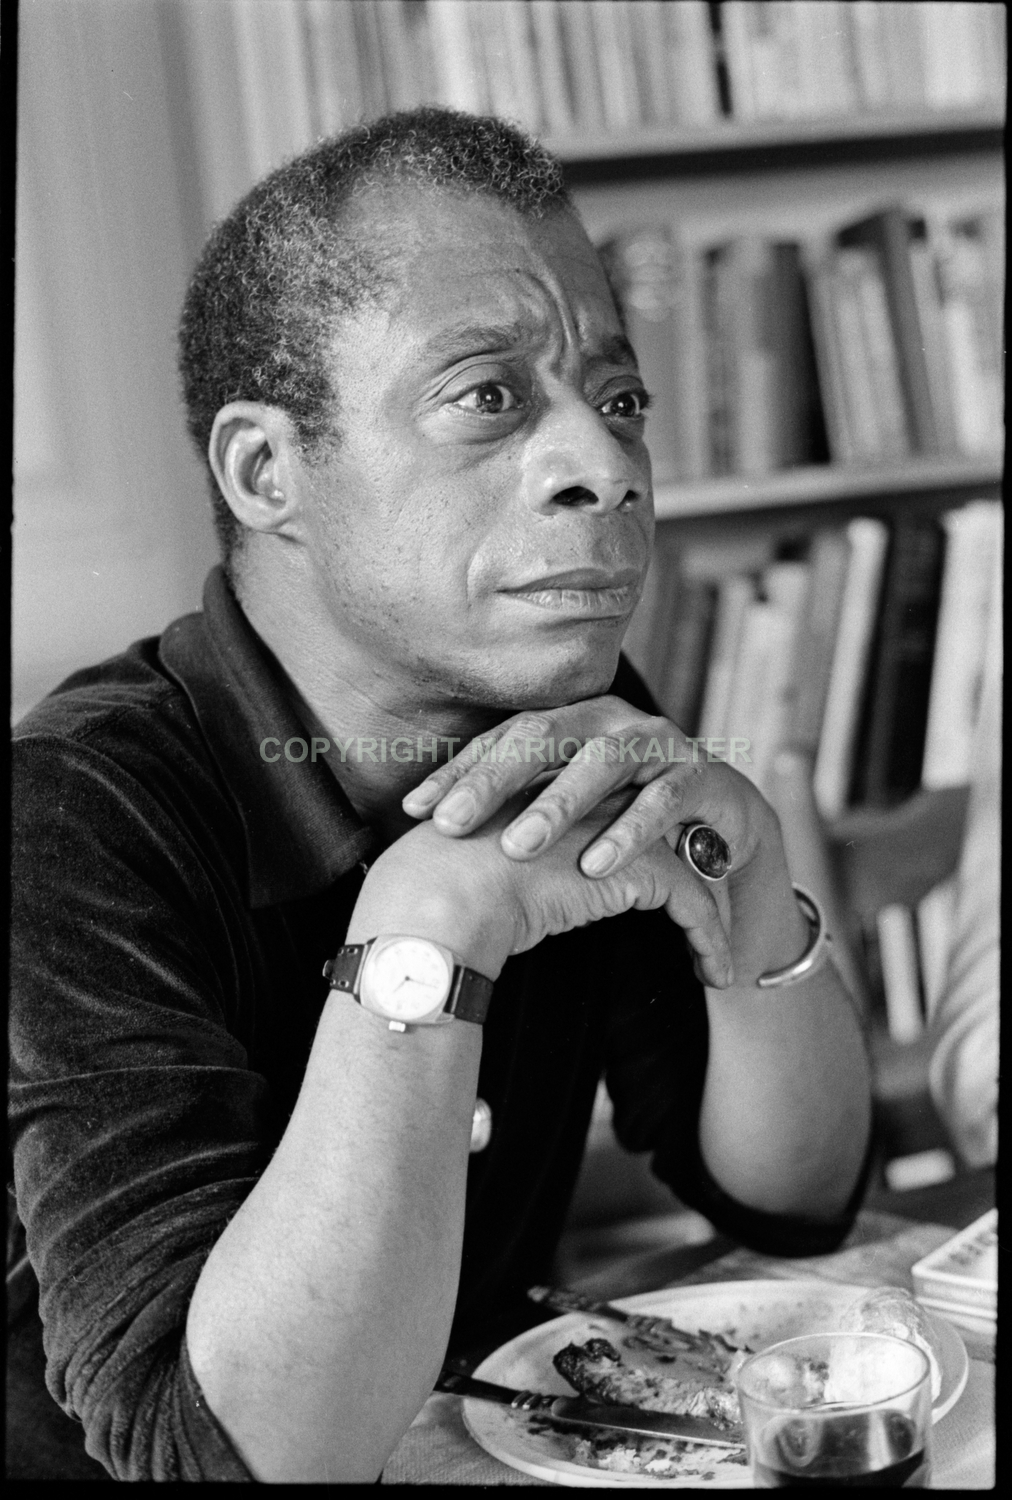 a biography of james baldwin James baldwin established his reputation with his first novel, go tell it on the mountain (1953), an autobiographical tale of growing up in harlem he became one of the leading african-american authors of his generation, known for novels and essays that tackled black-white and hetero-homosexual.